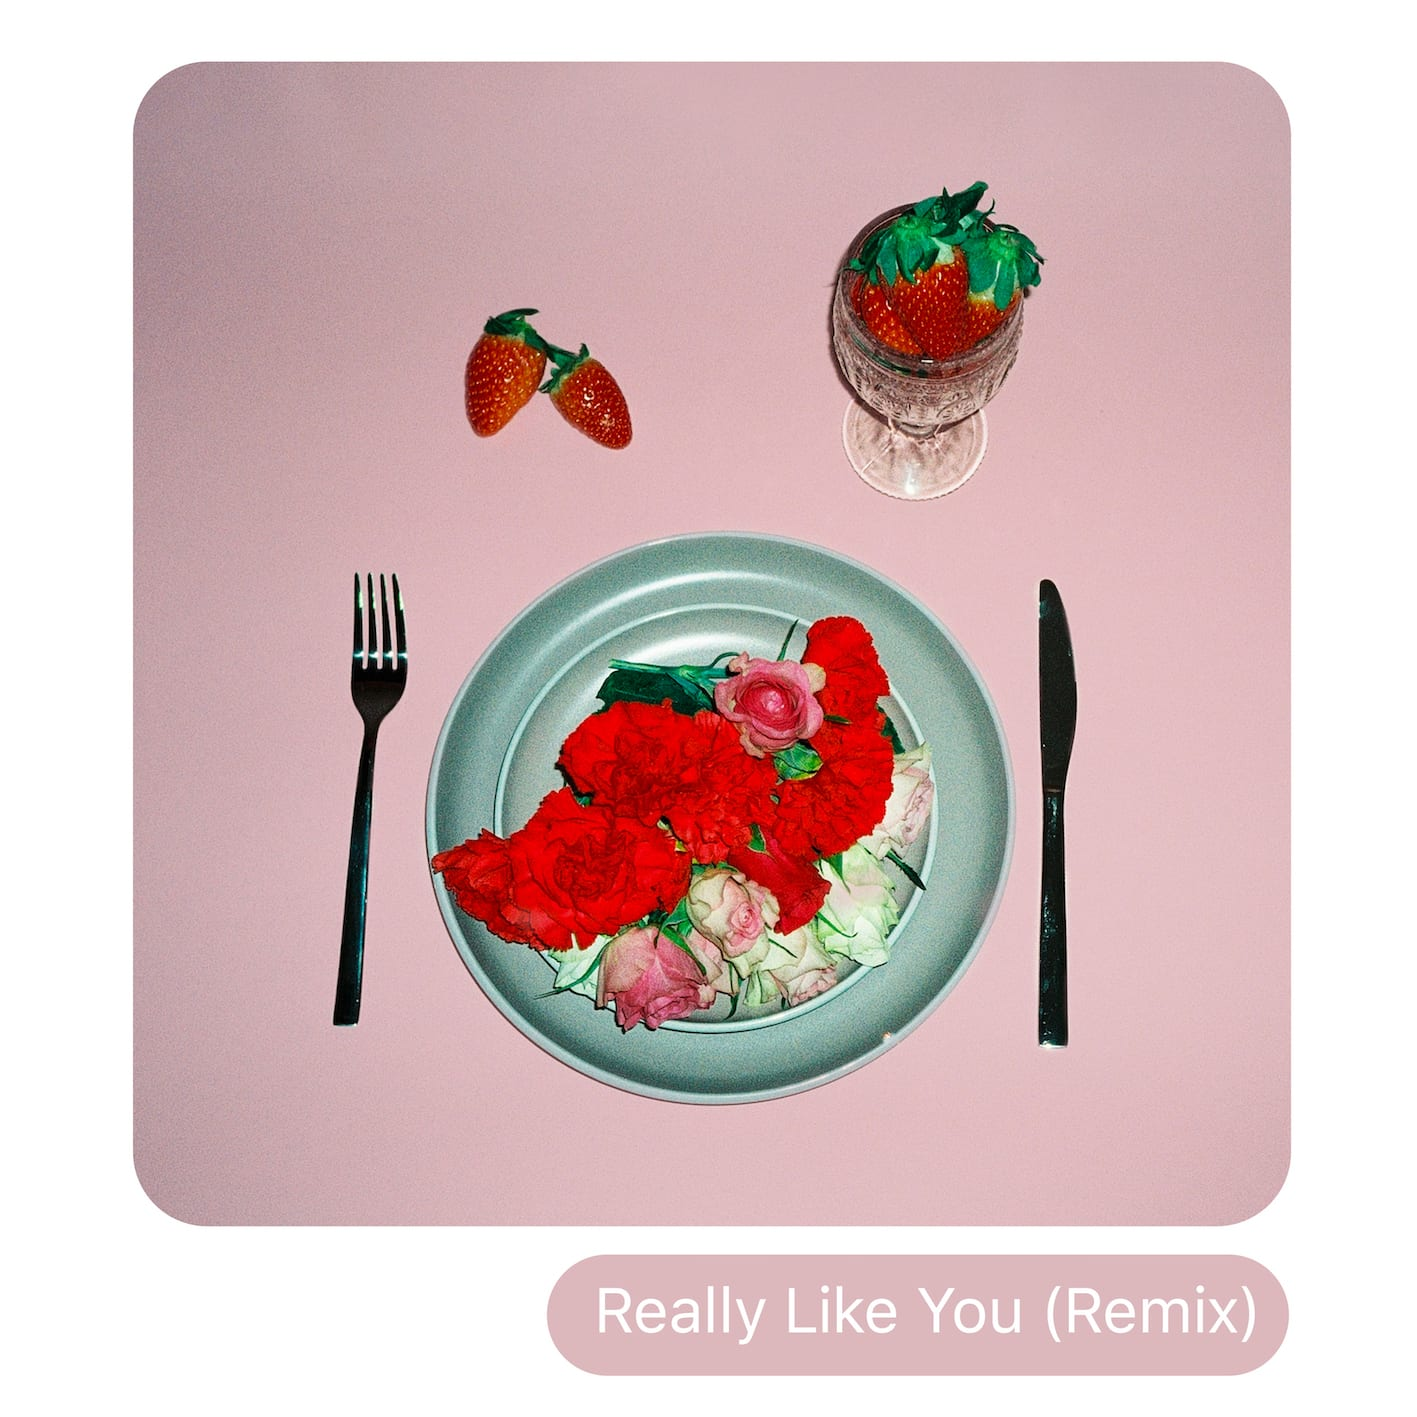 Goldhouse New Release Remix Ft. Anja Kotar of Really Like You